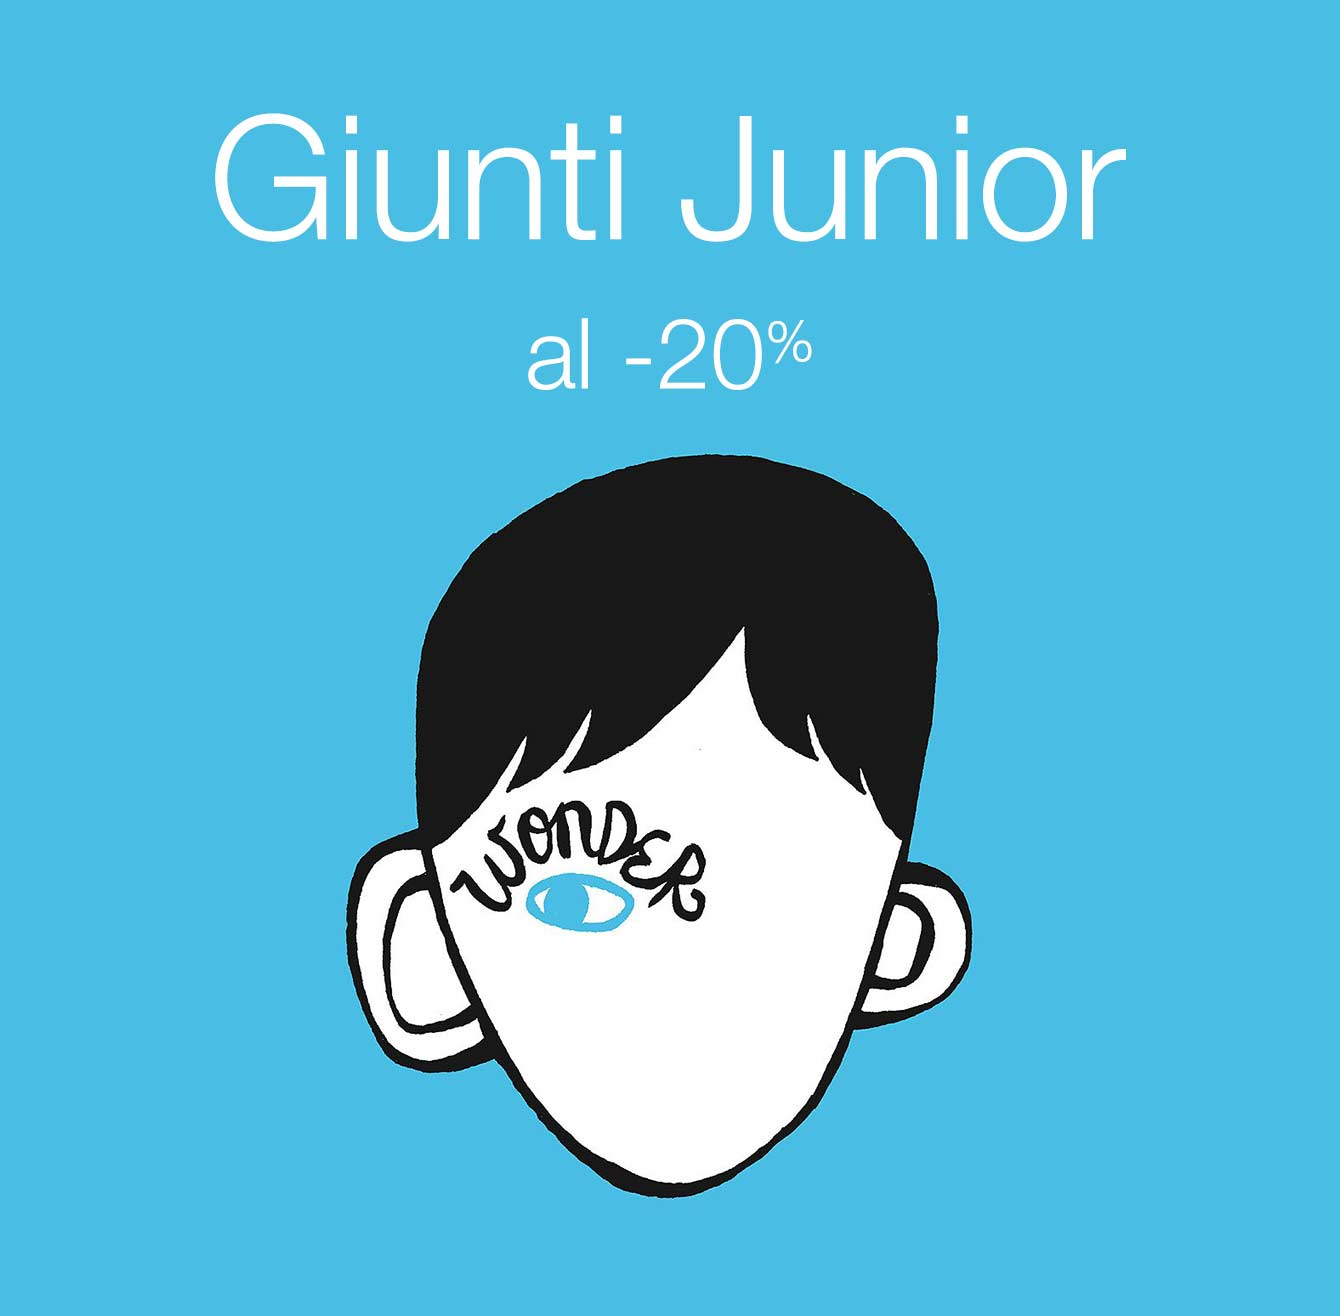 Giunti Junior al -20%